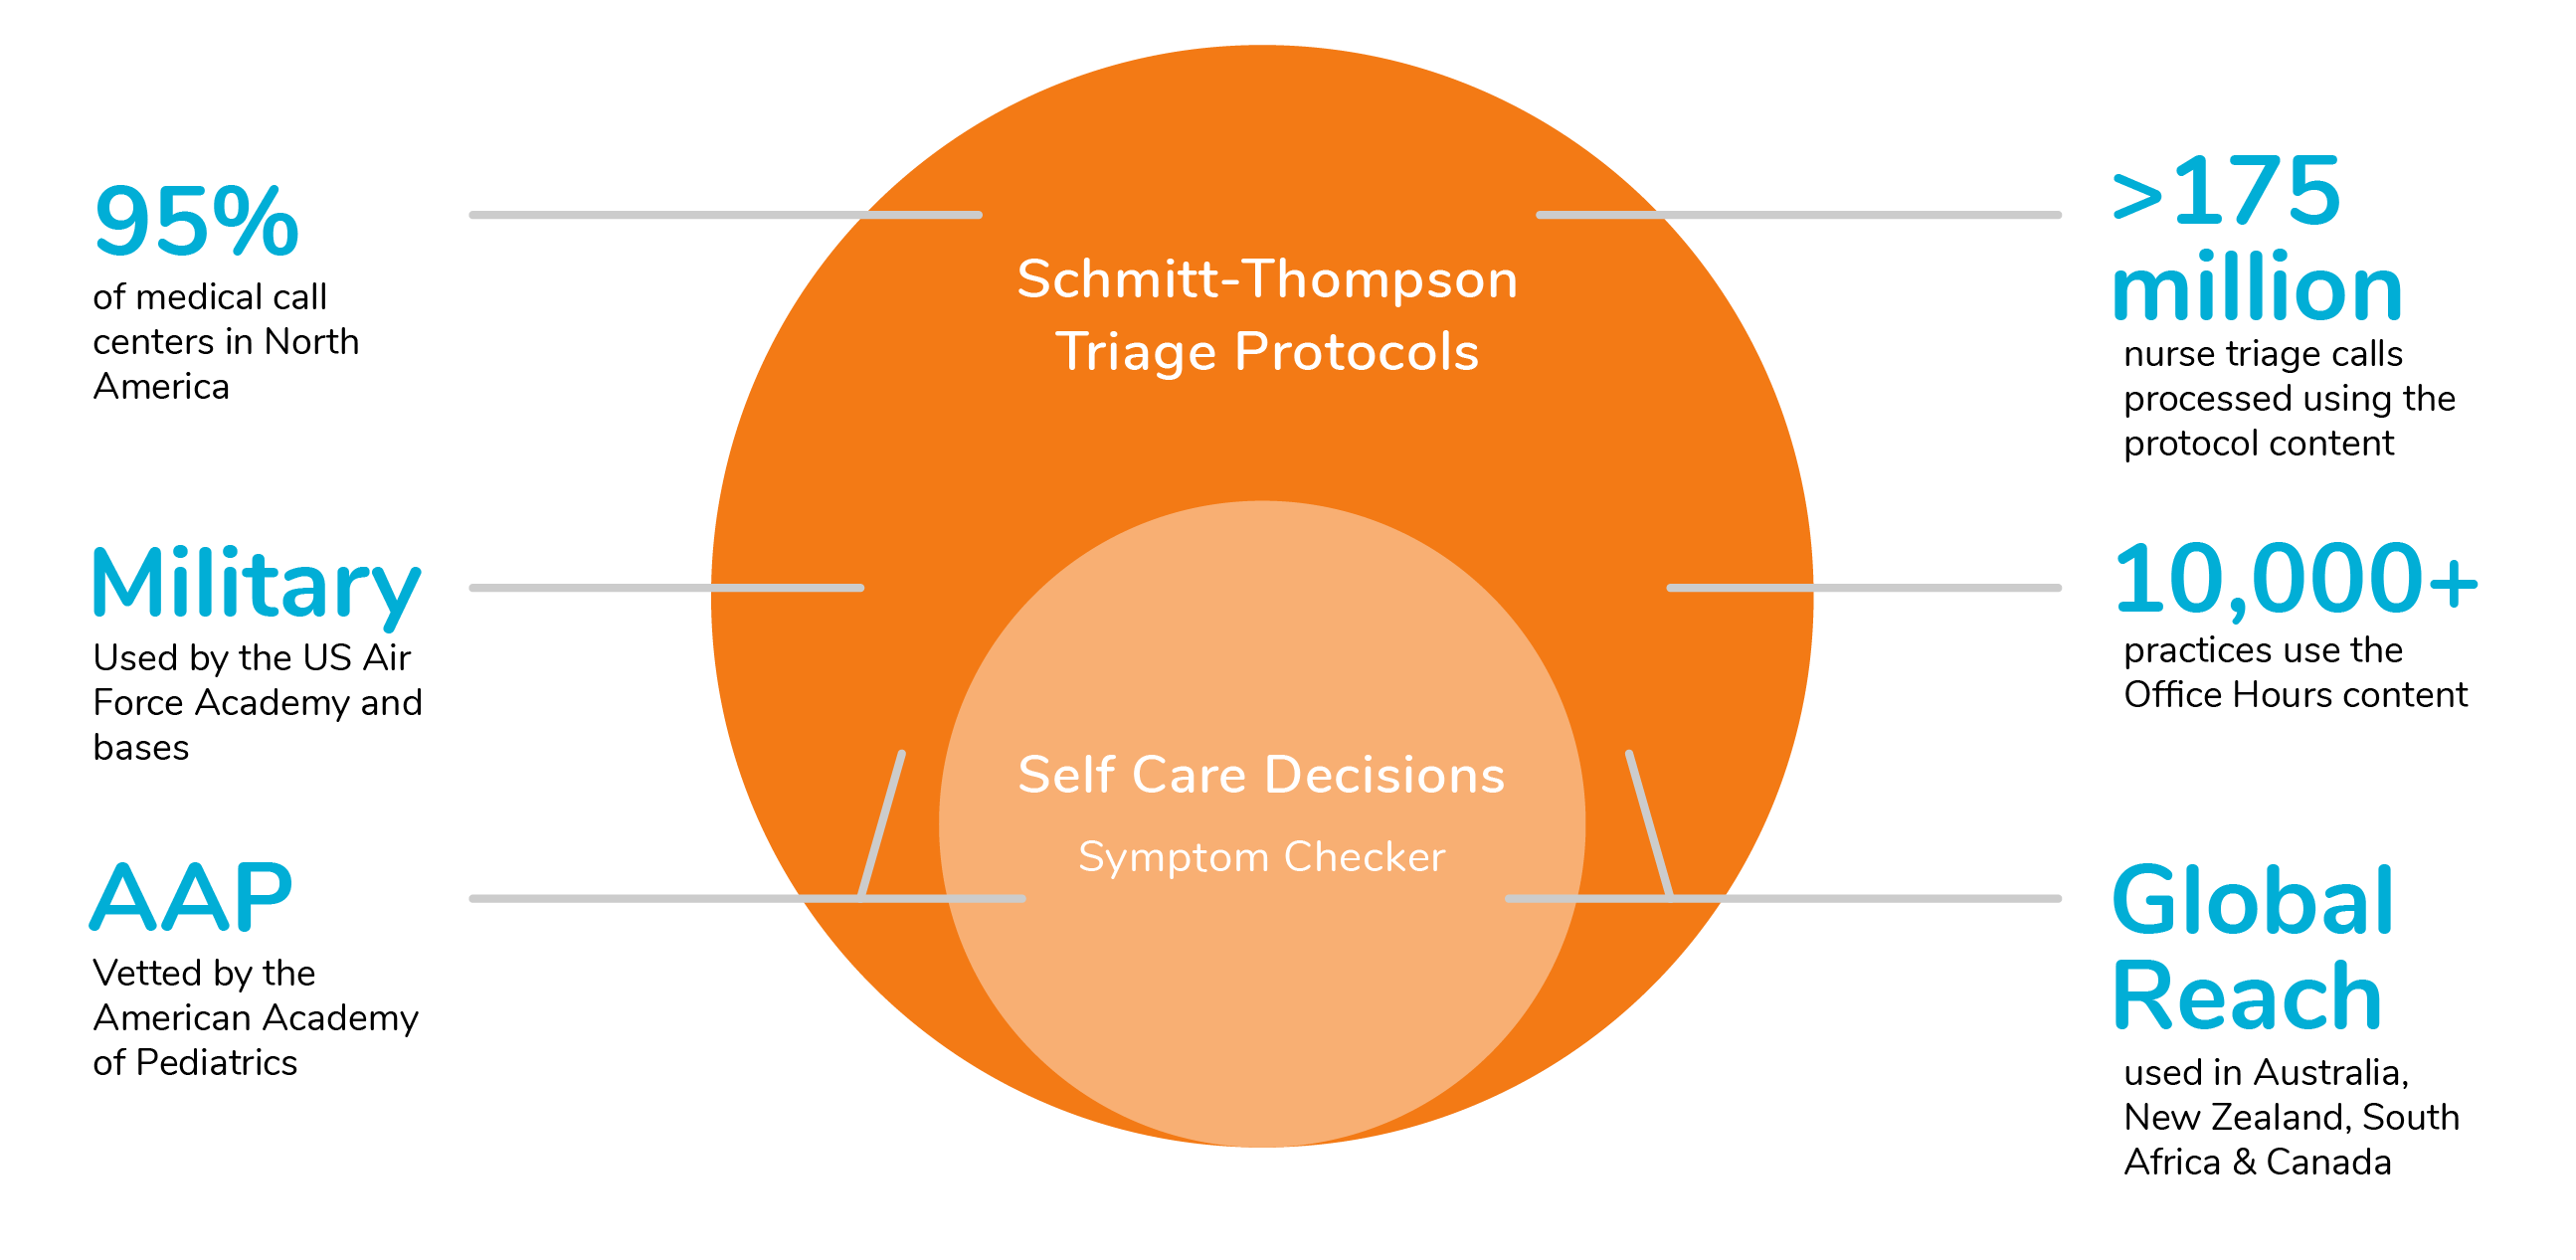 Graphic illustrating how Barton Schmitt triage protocols and our medical symptom checker are used around the world